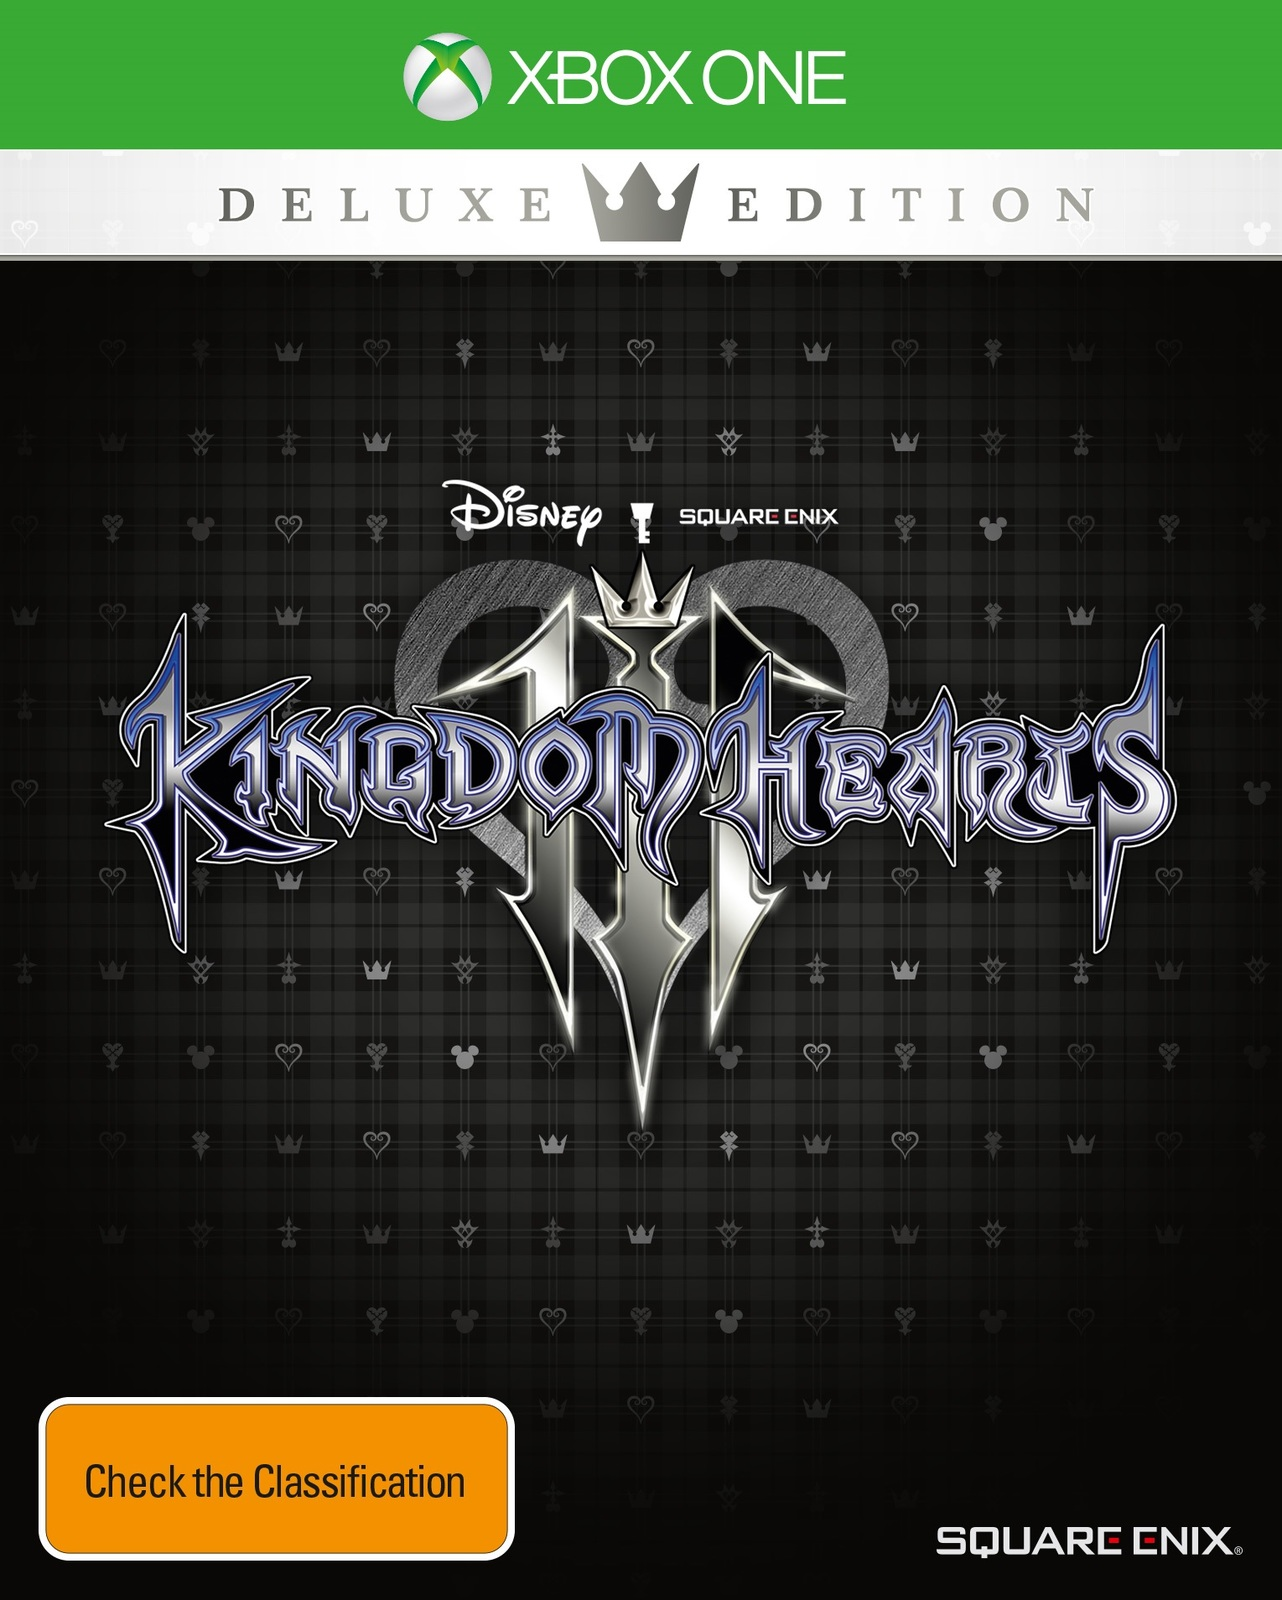 Kingdom Hearts III Deluxe Edition for Xbox One image